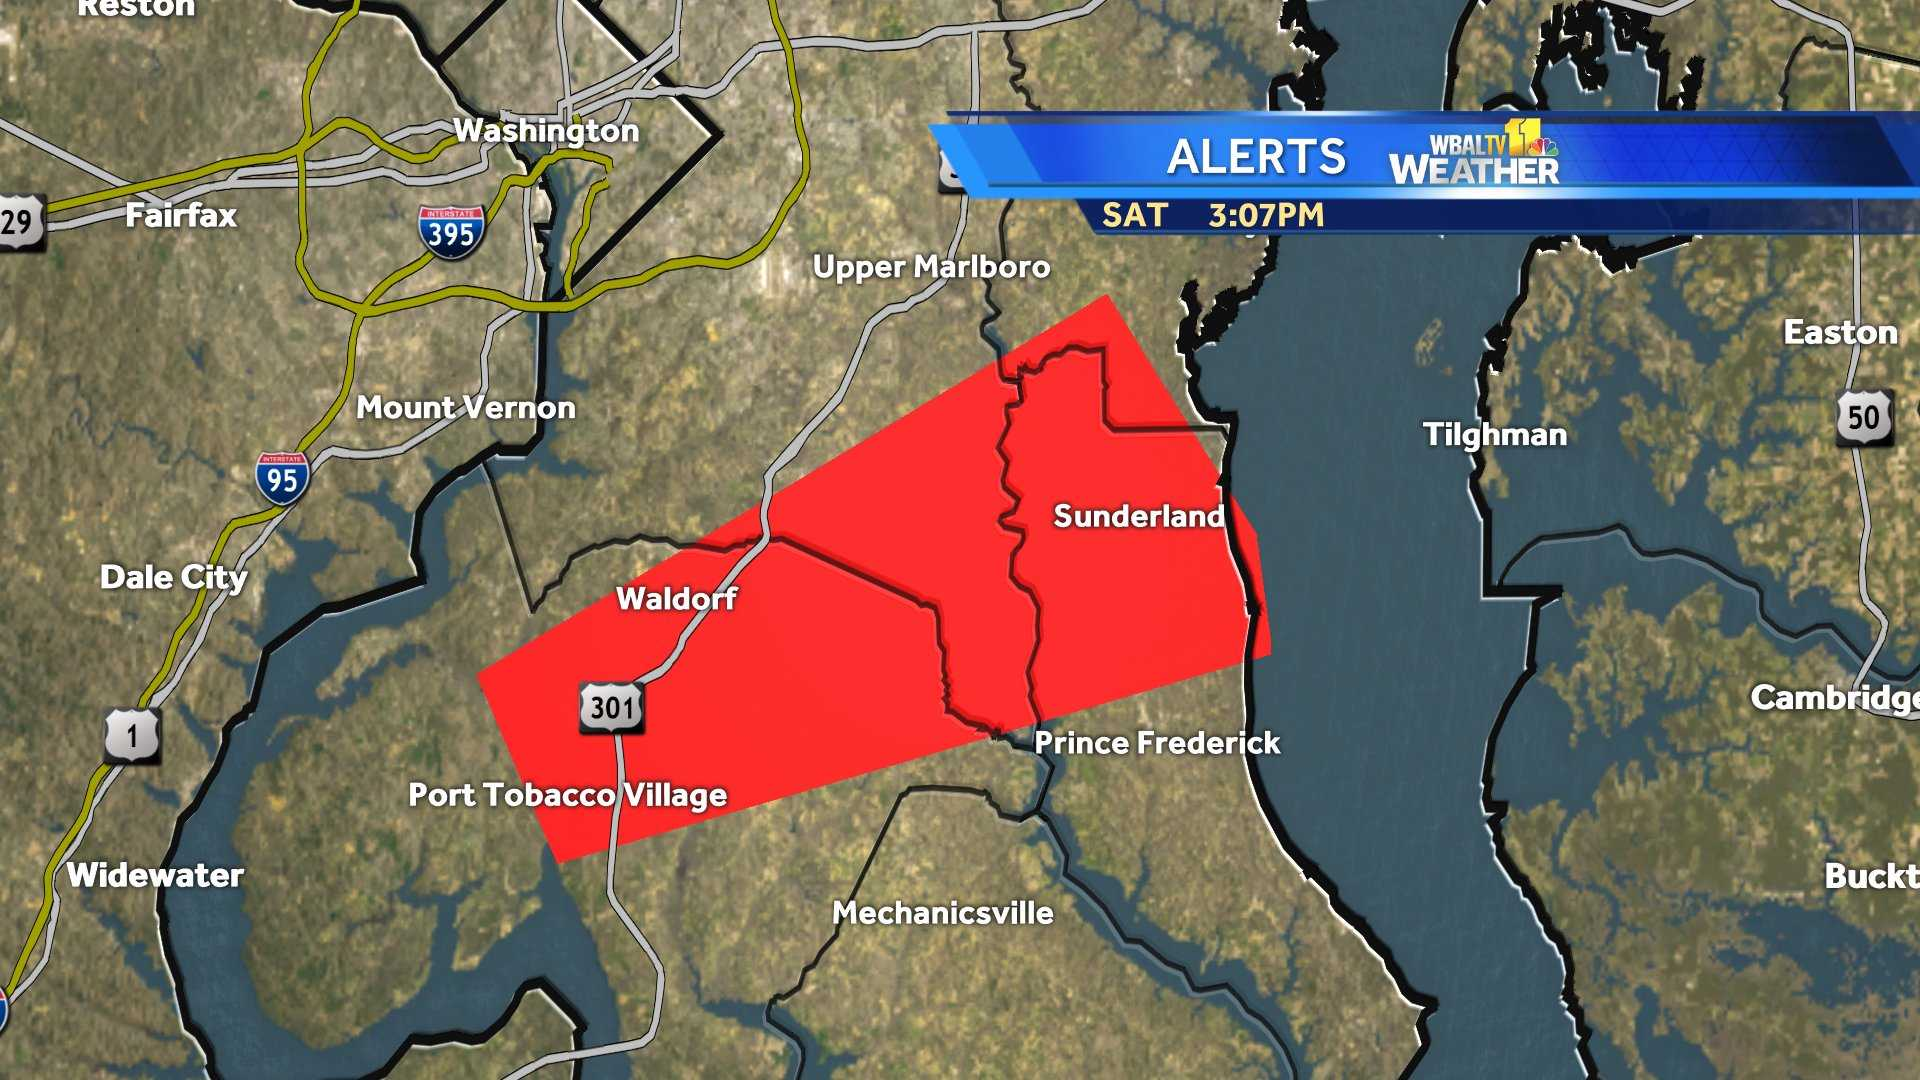 Tornado confirmed in Charles County on